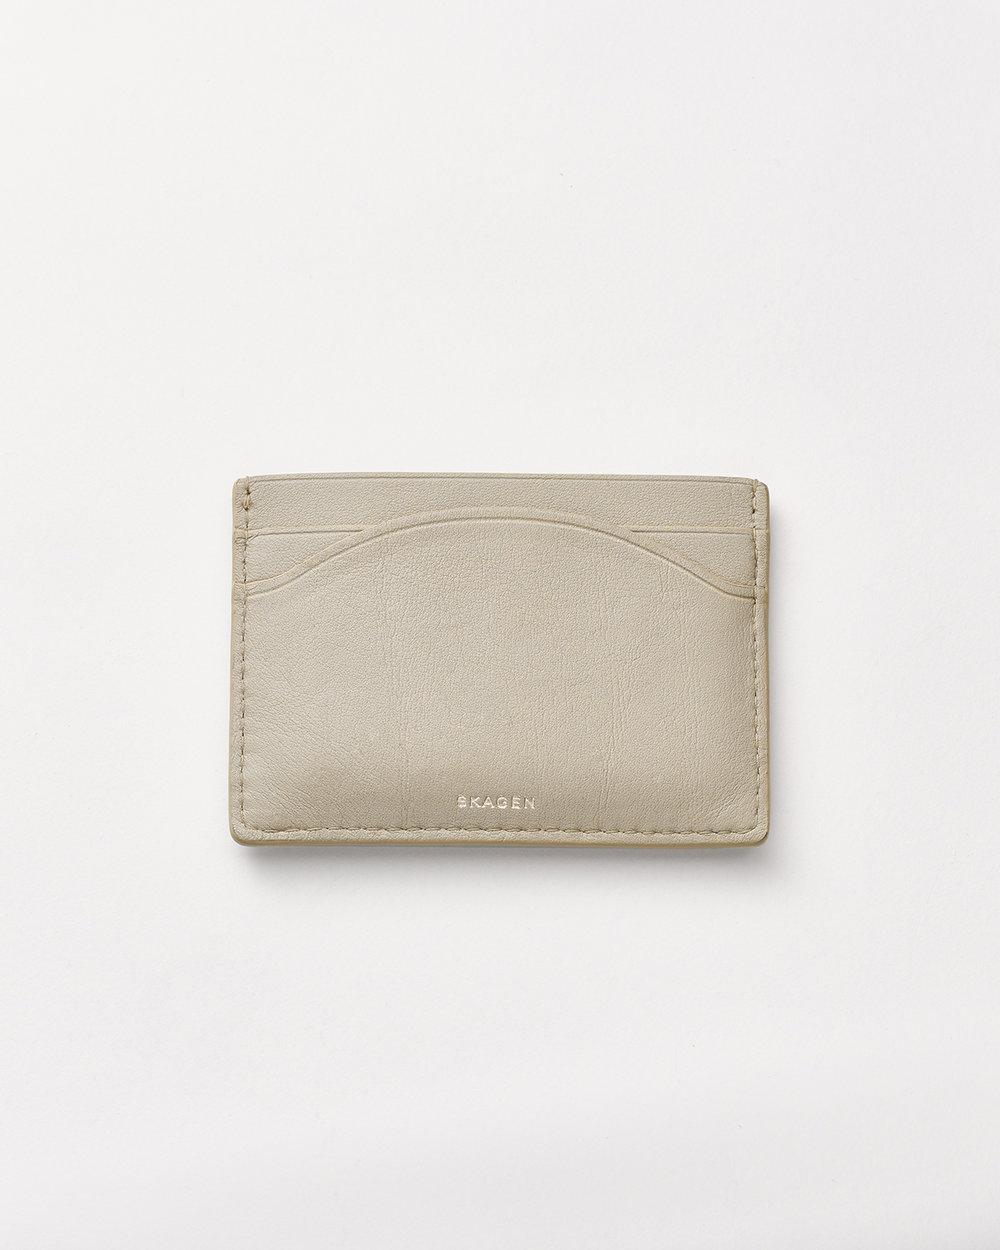 corie humble skagen wallet oatmeal card case